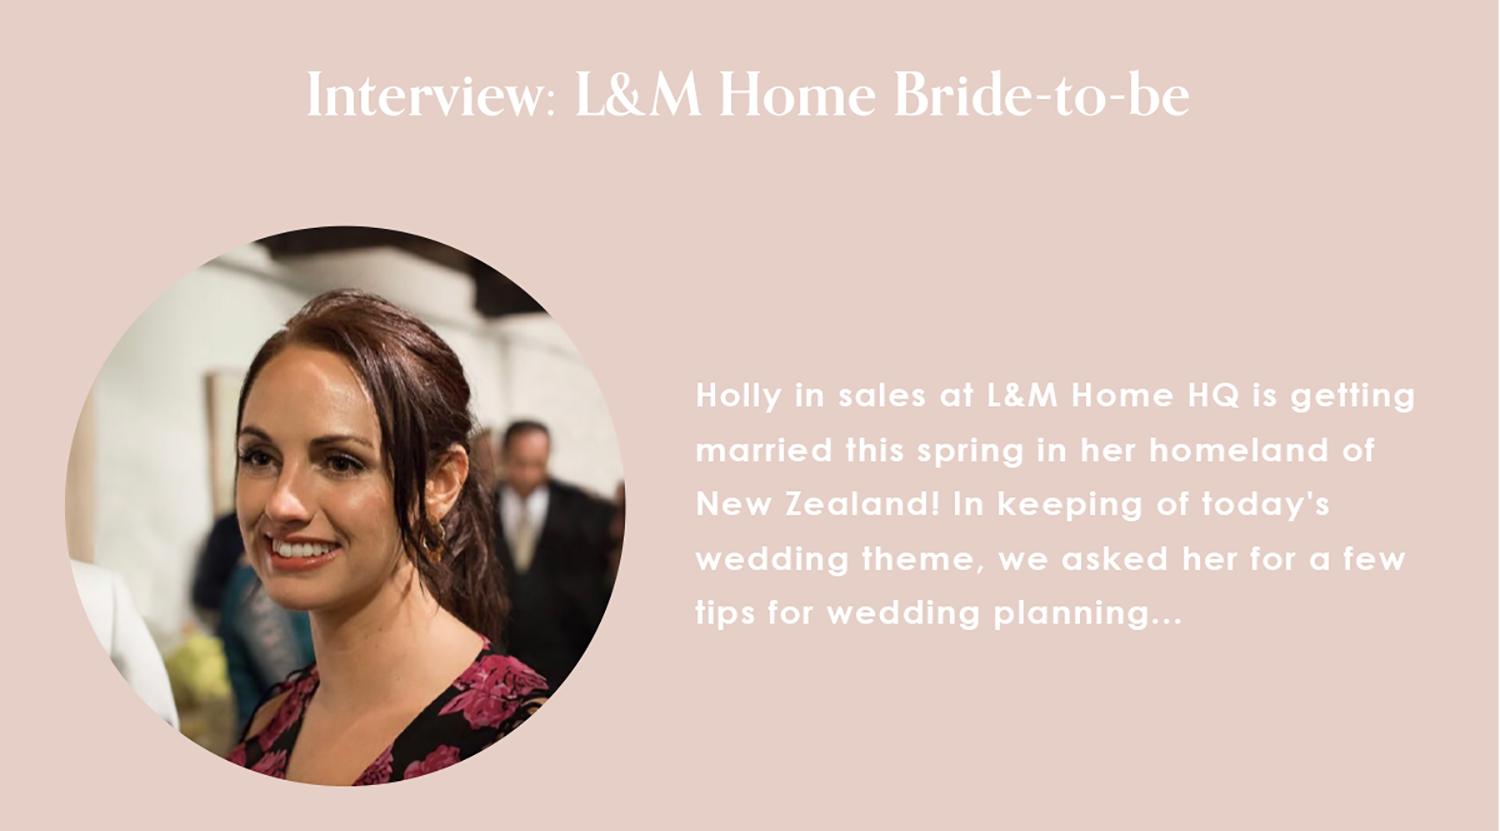 Bride to be interview - L&M Home